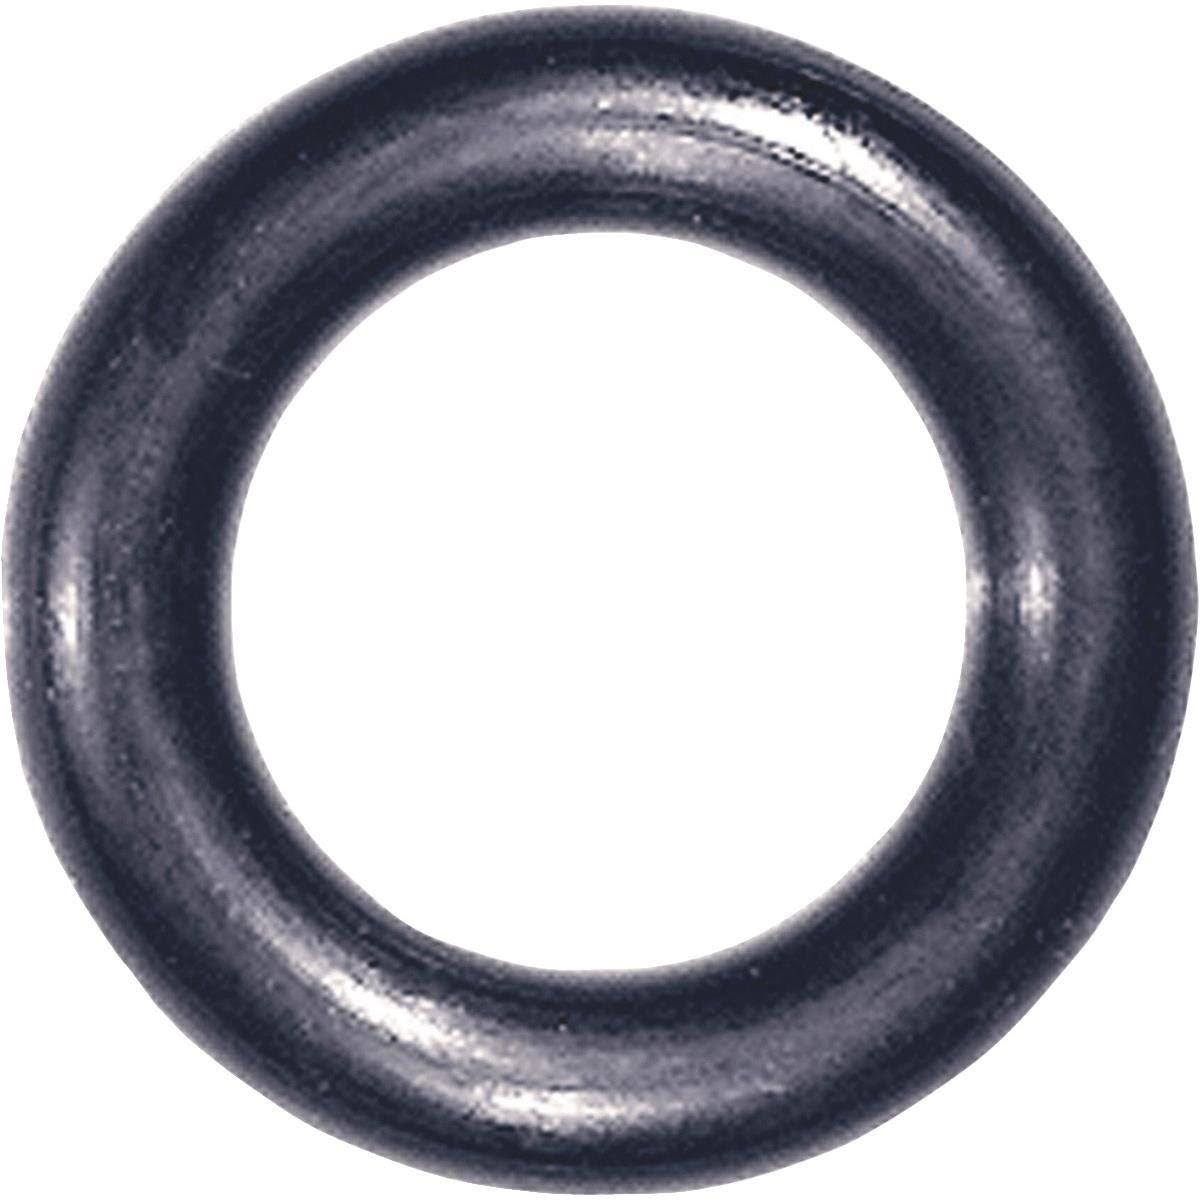 Danco O Ring Replacement Bathroom Kitchen Sink Rubber - Black